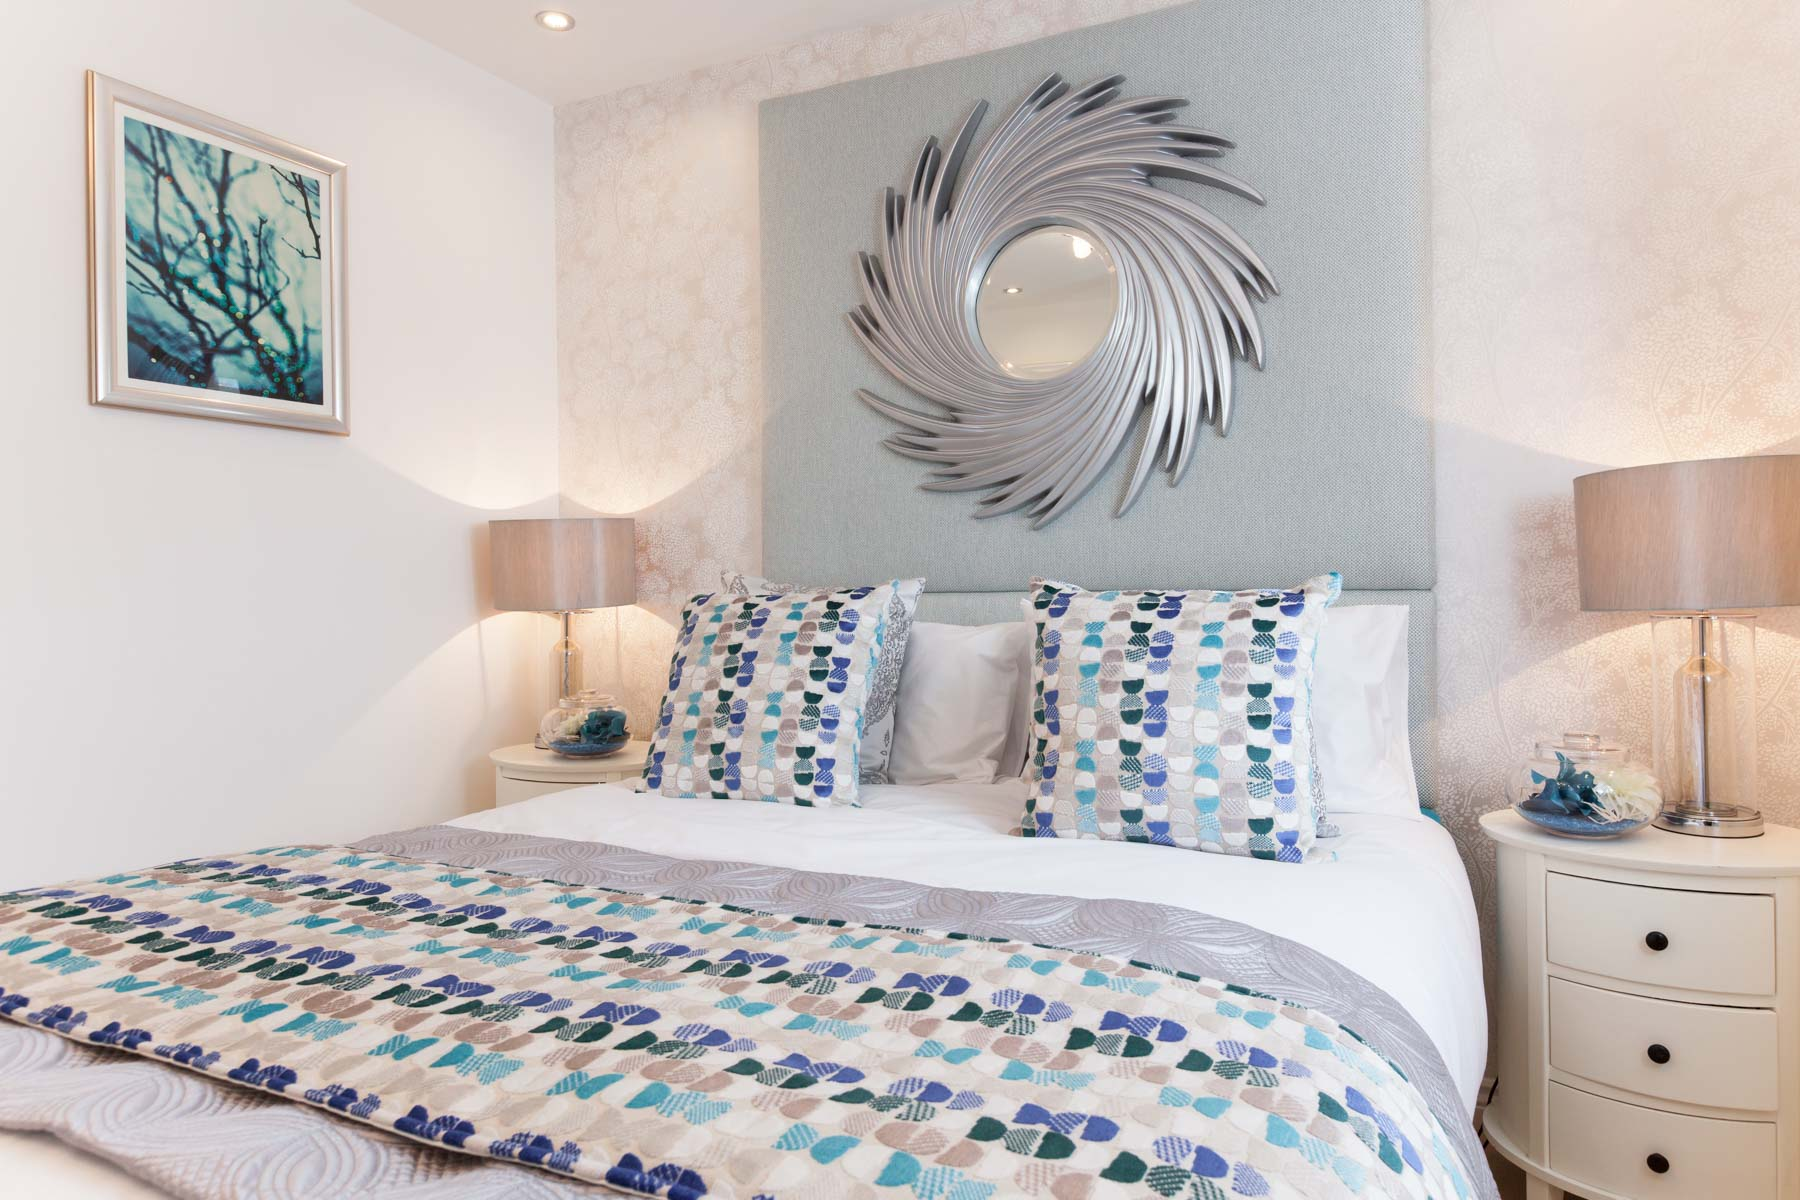 Taylor Wimpey Exeter - Cranbrook - Yewdale example bedroom 3